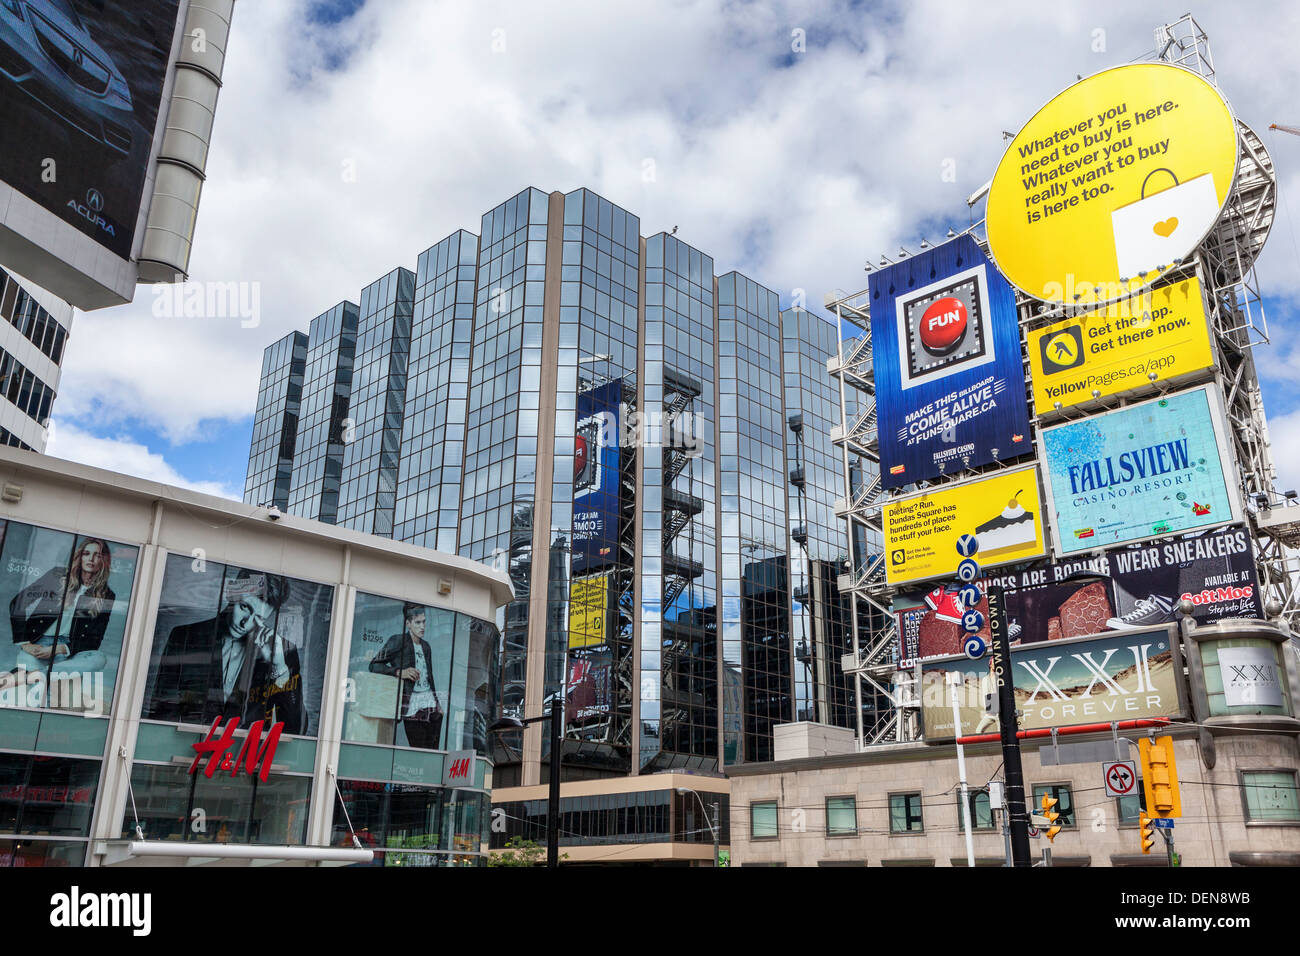 Advertisements and billboards around Dundas Square, Toronto - Stock Image